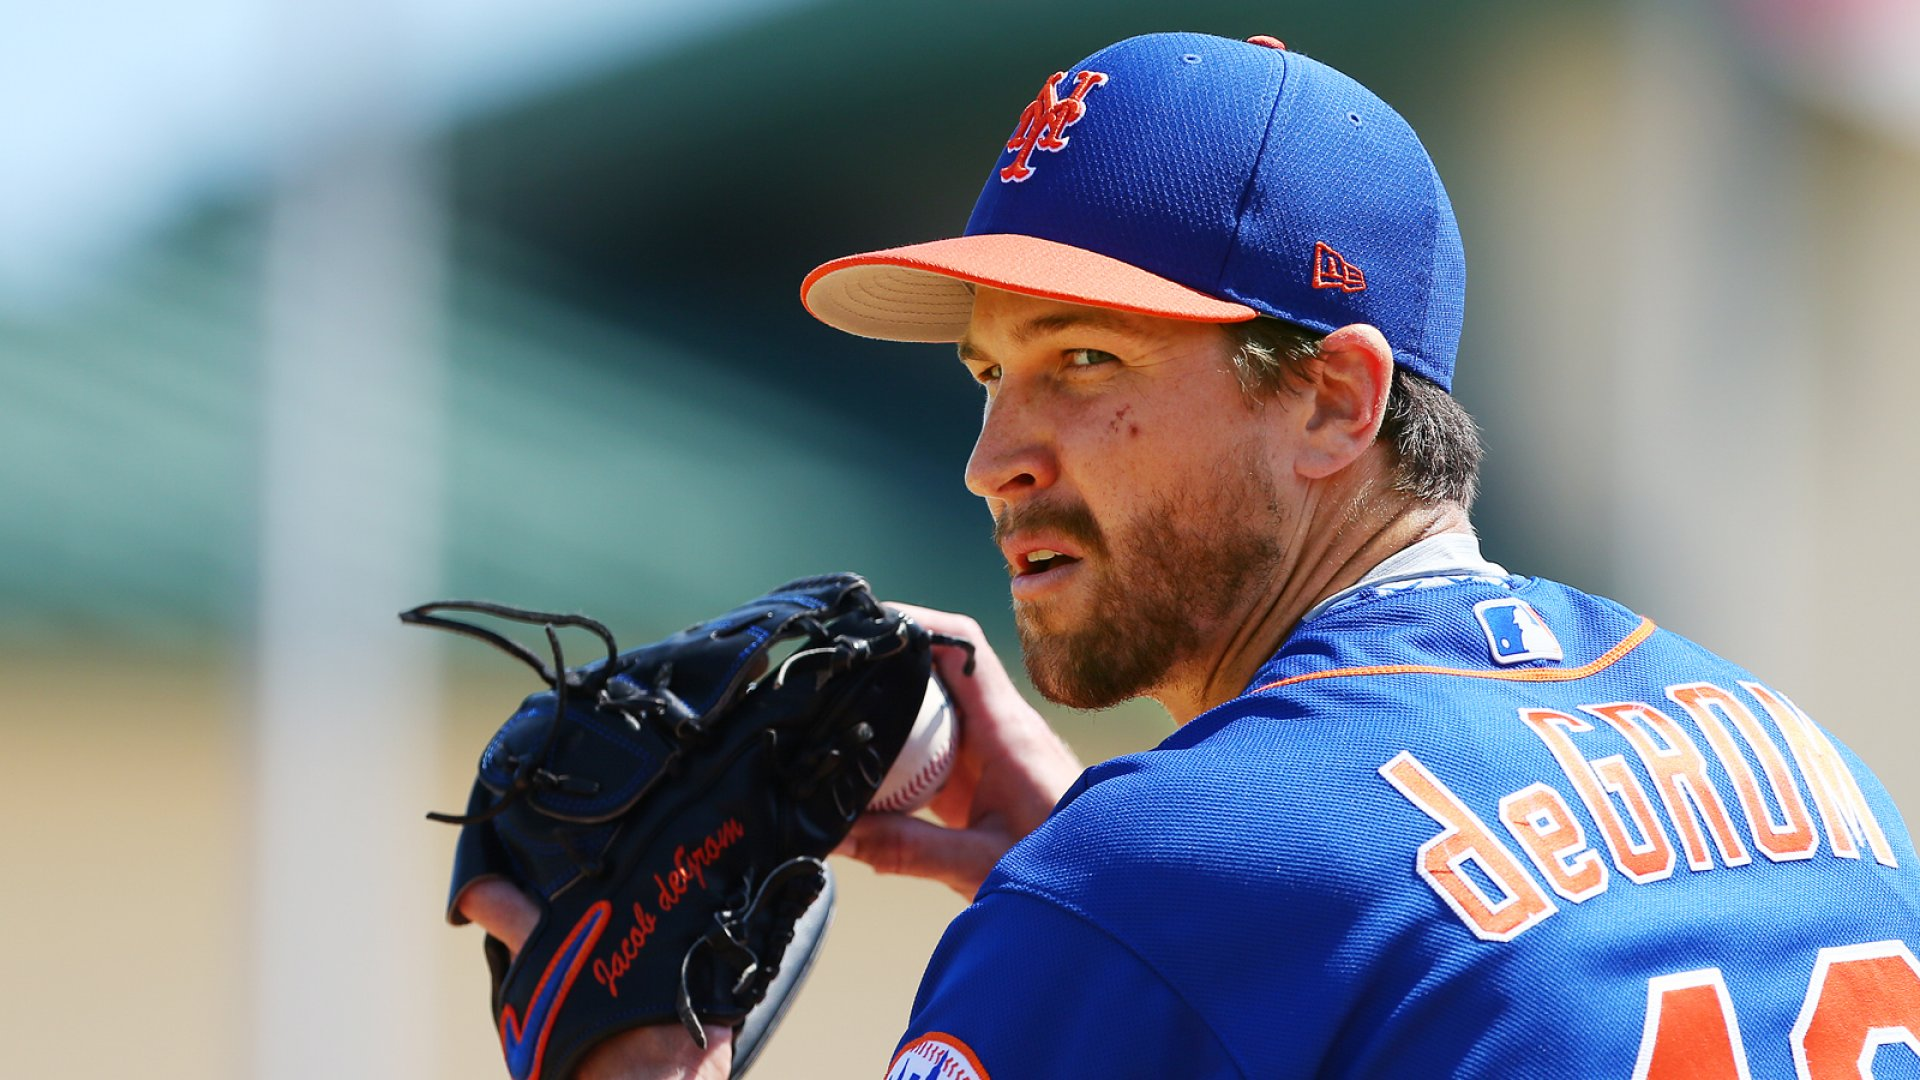 Jacob deGrom #48 of the New York Mets.